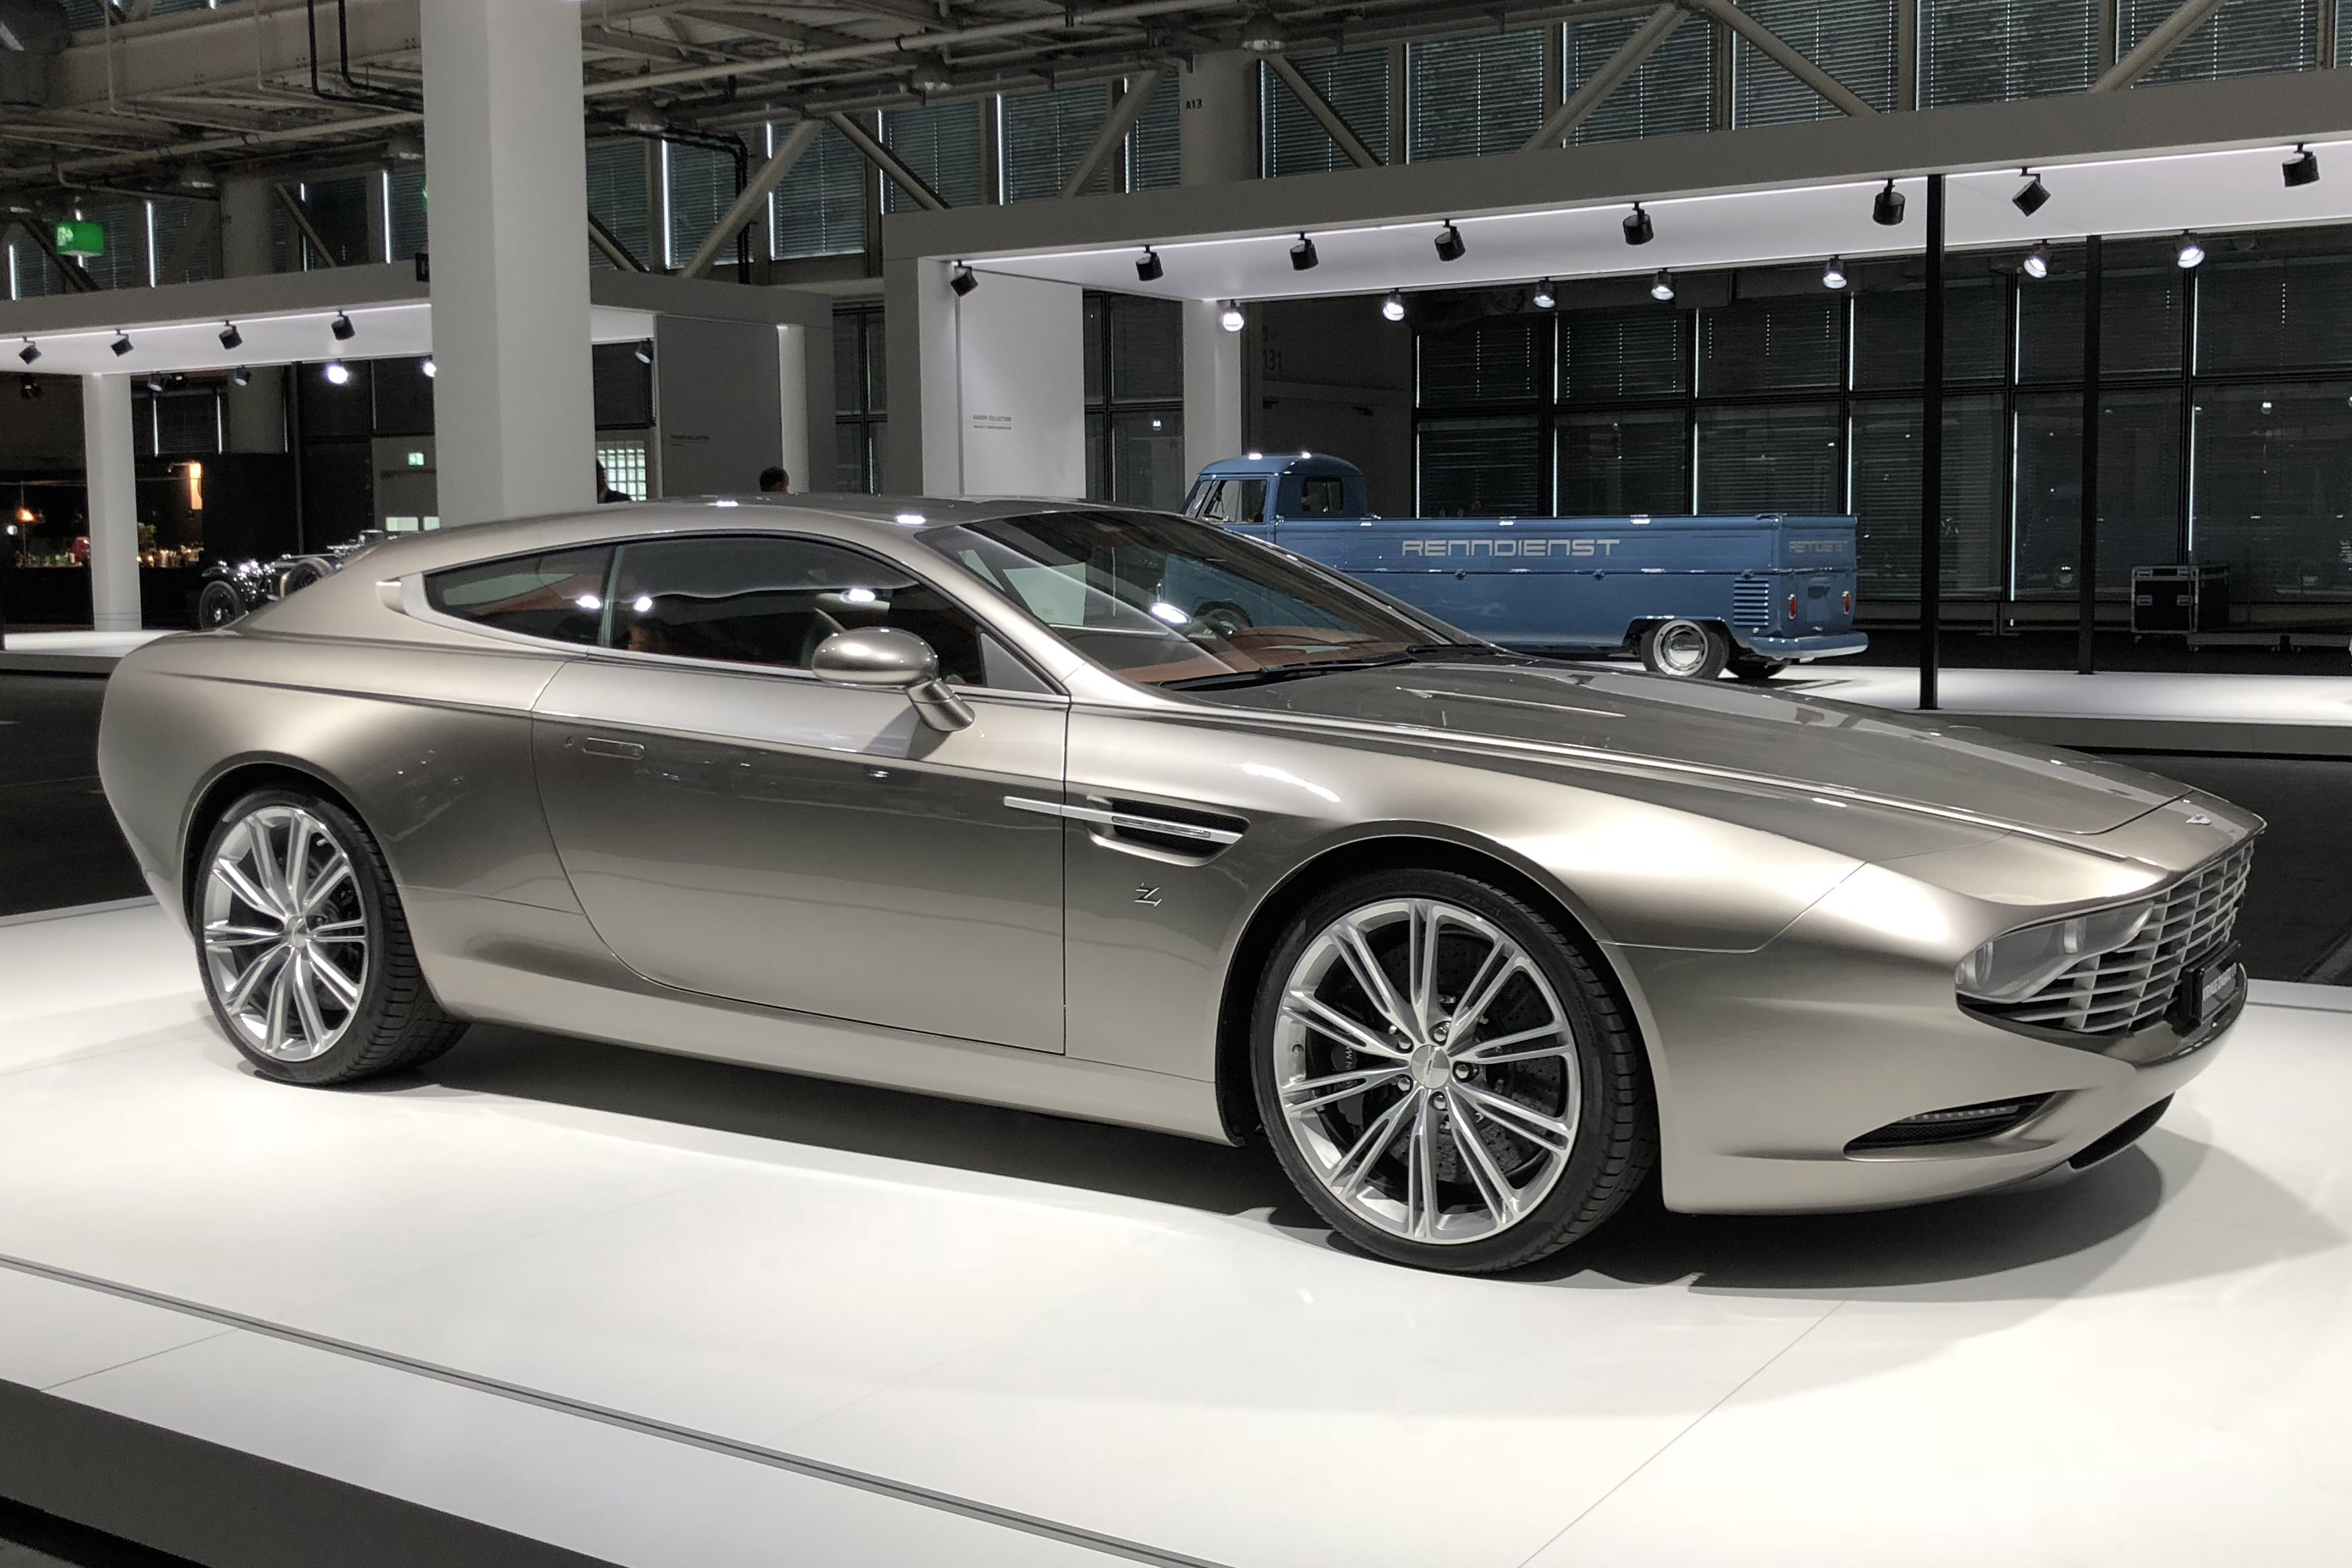 Grand Basel 10 Best Cars From The Coolest Car Show You Didn T Know